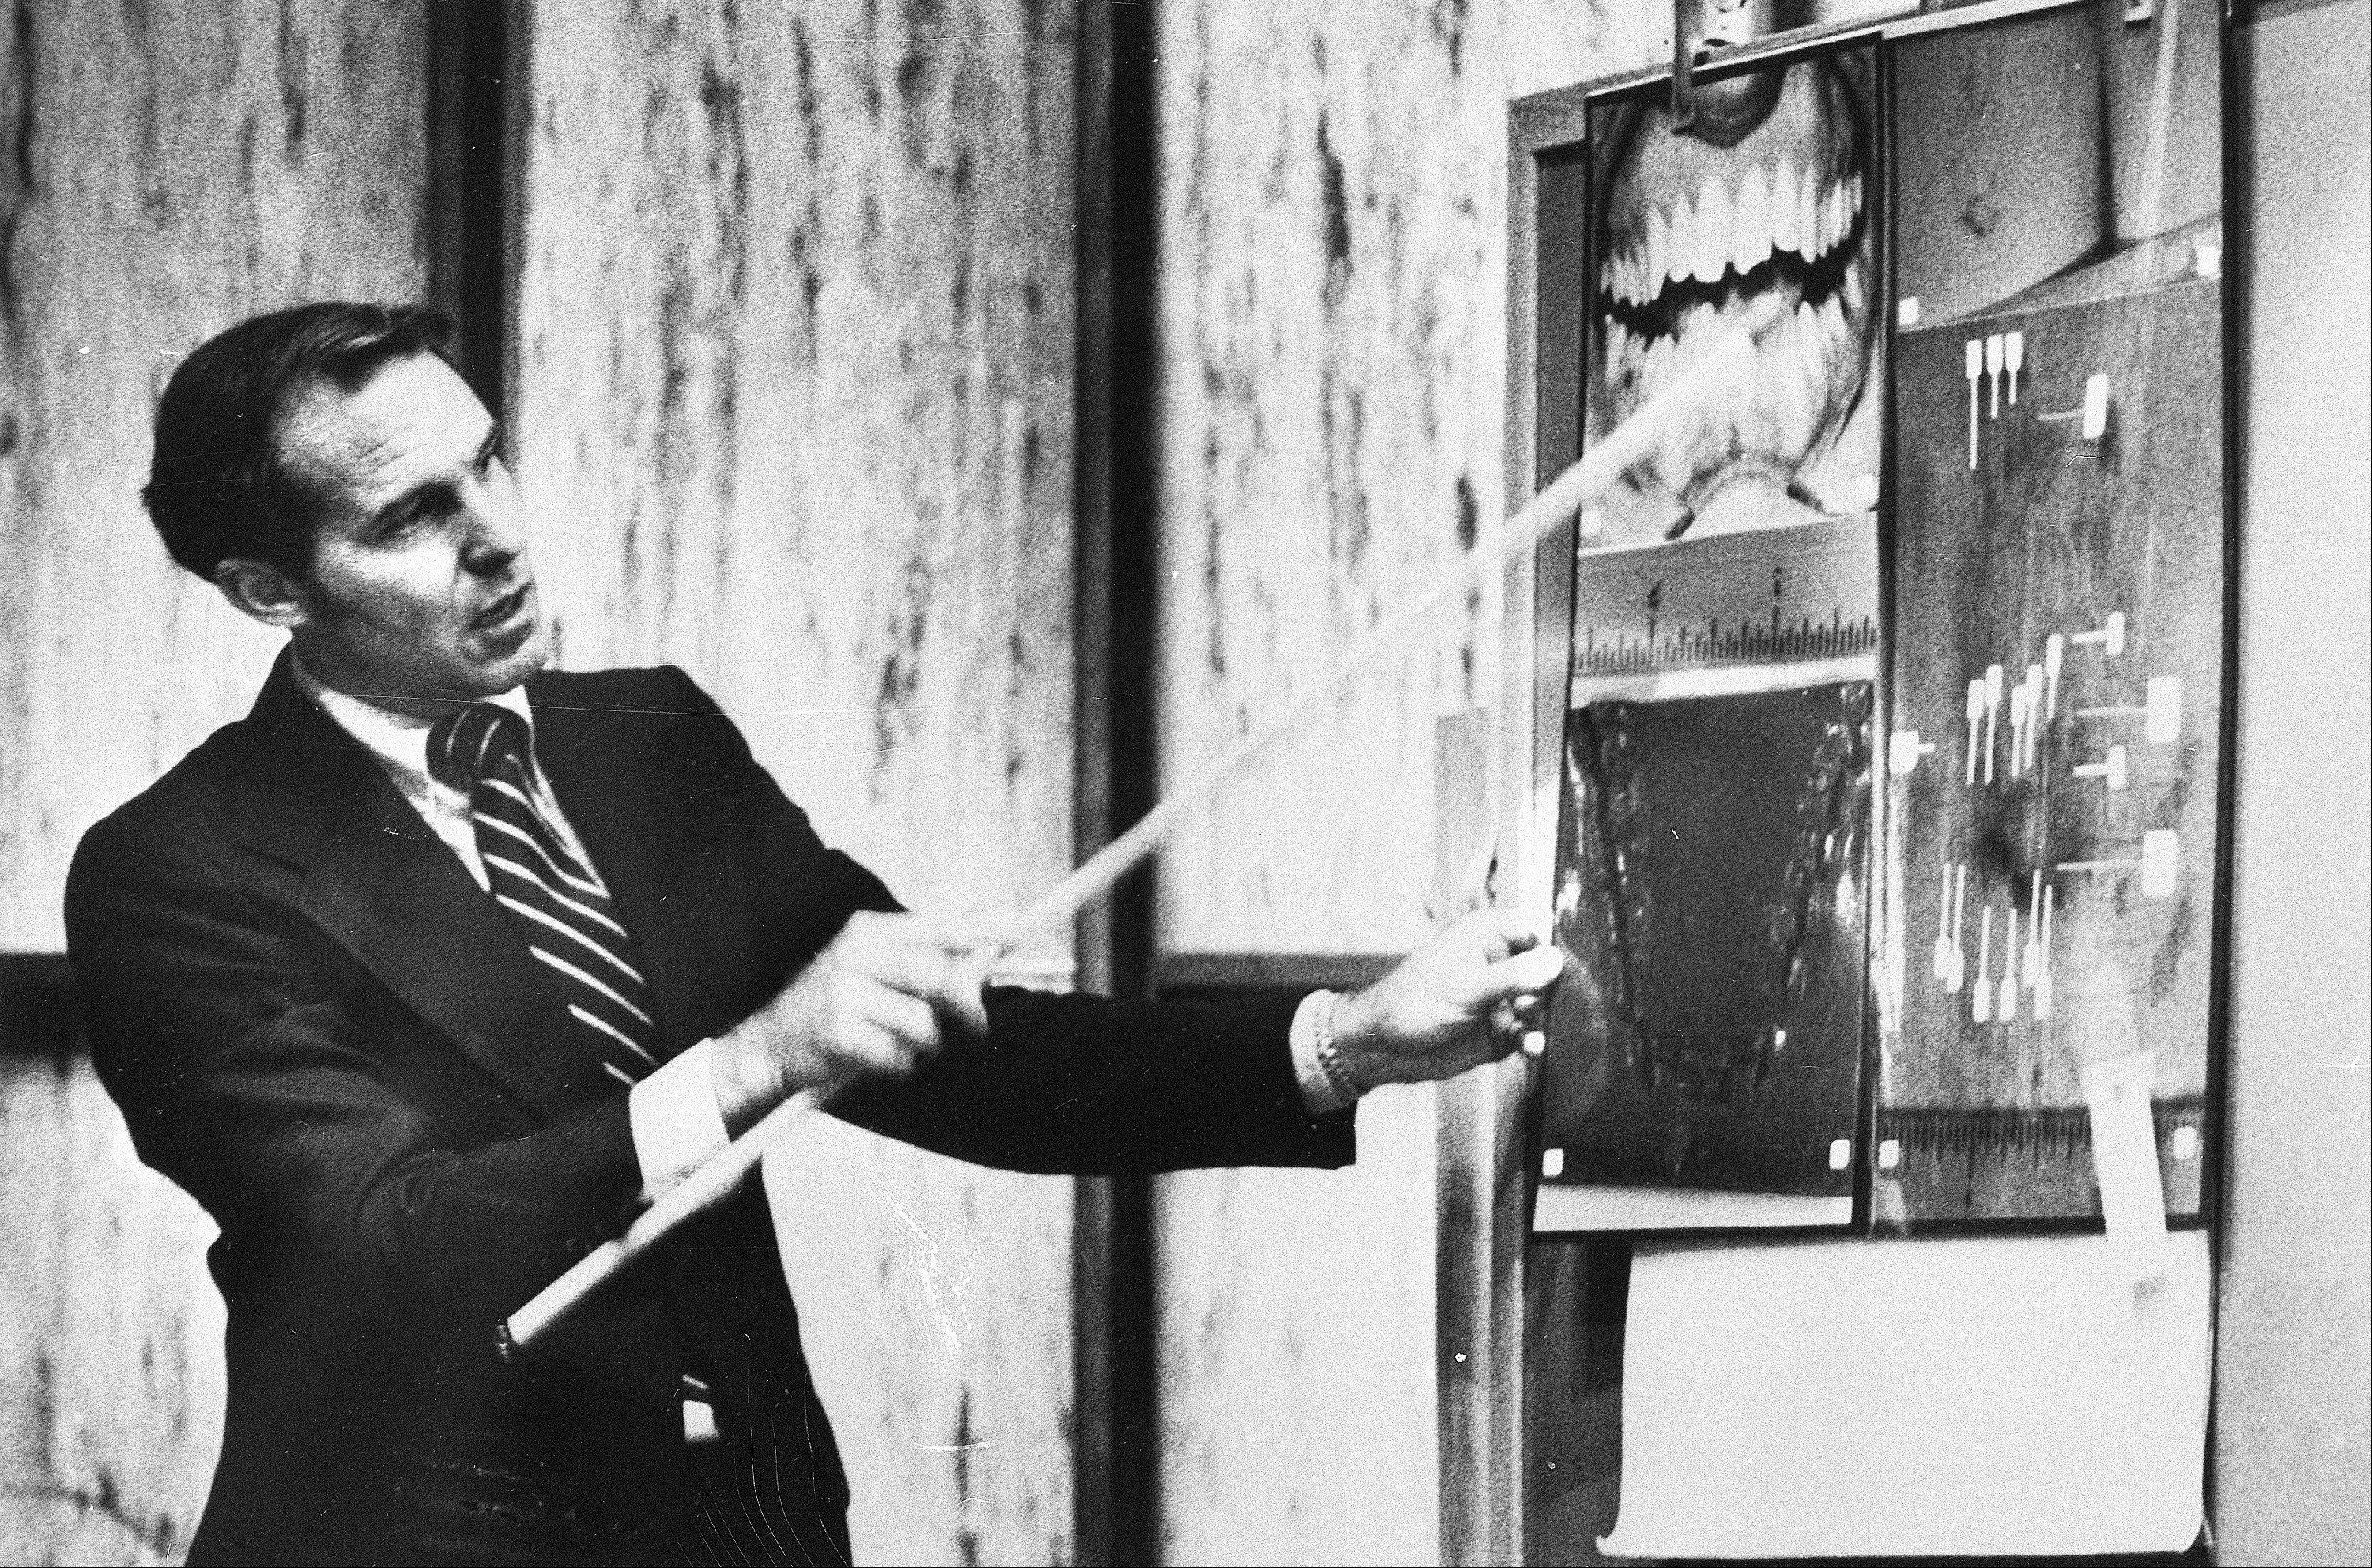 Forensic odontologist Richard Souviron pointsg to a blown-up photograph of Theodore Bundy's teeth during Bundy's murder trial in Miami, Fla. Souviron, one of the prosecution's key witnesses, showed the jury that only Bundy's teeth could have made the bite marks discovered on one of the slain coeds in the Chi Omega murder case.